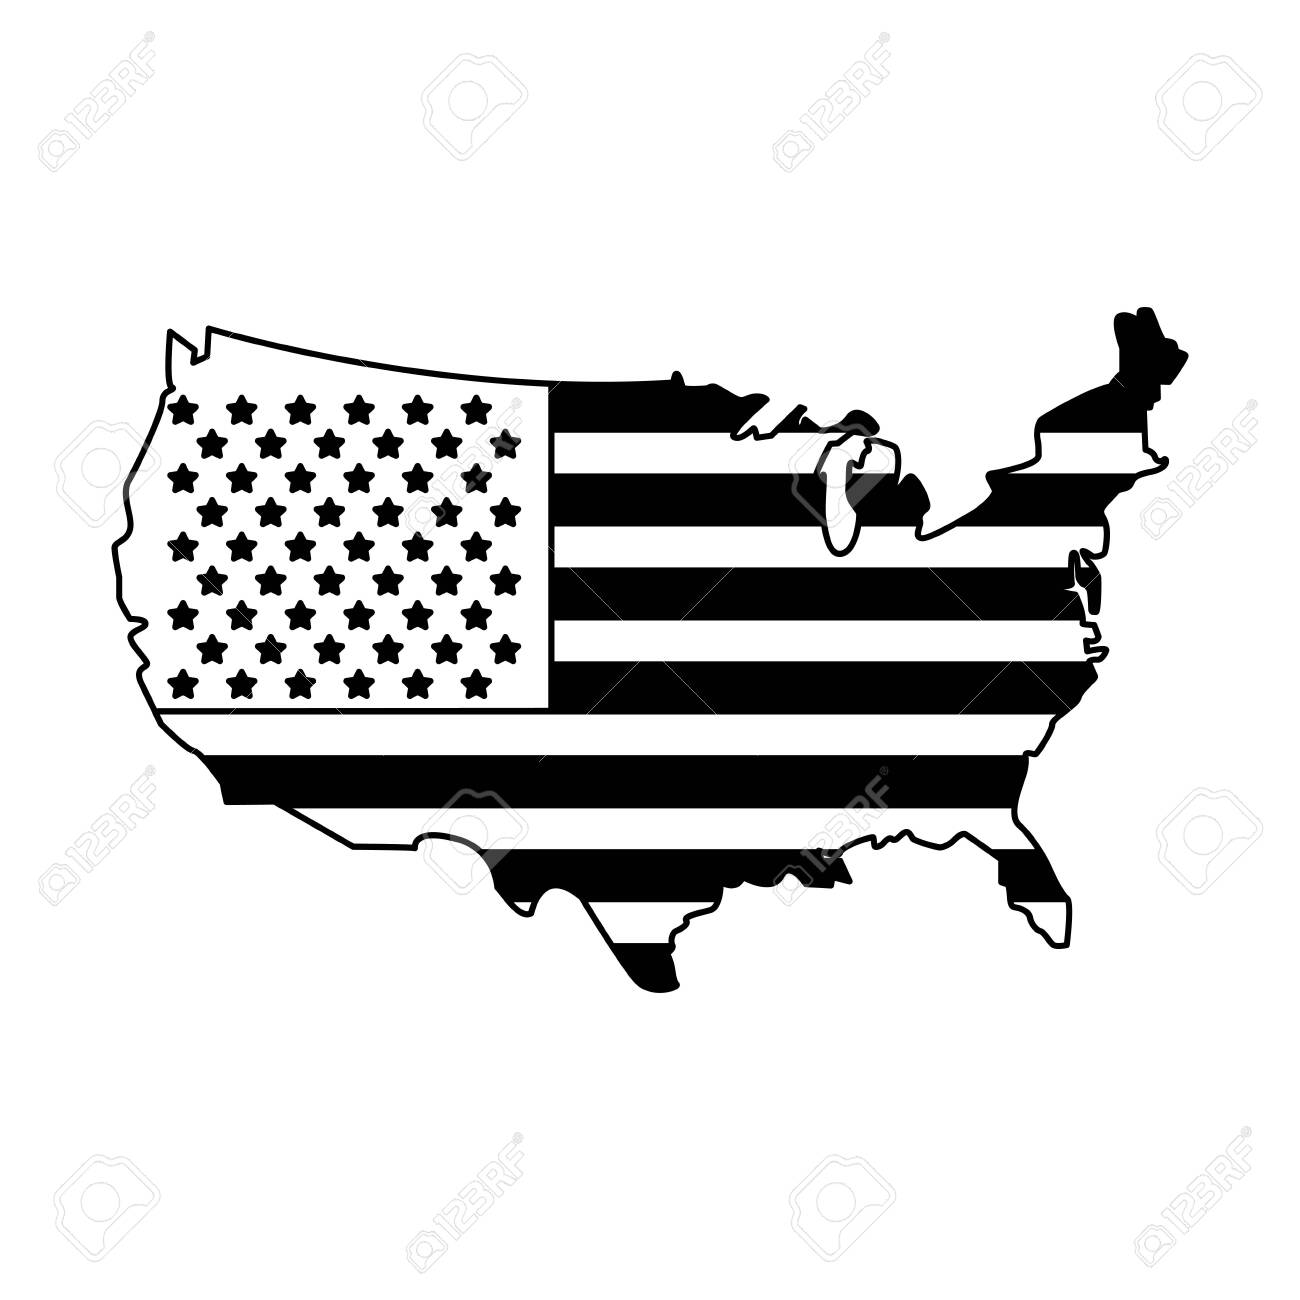 United states map outline with flag stars and stripes patriotic..